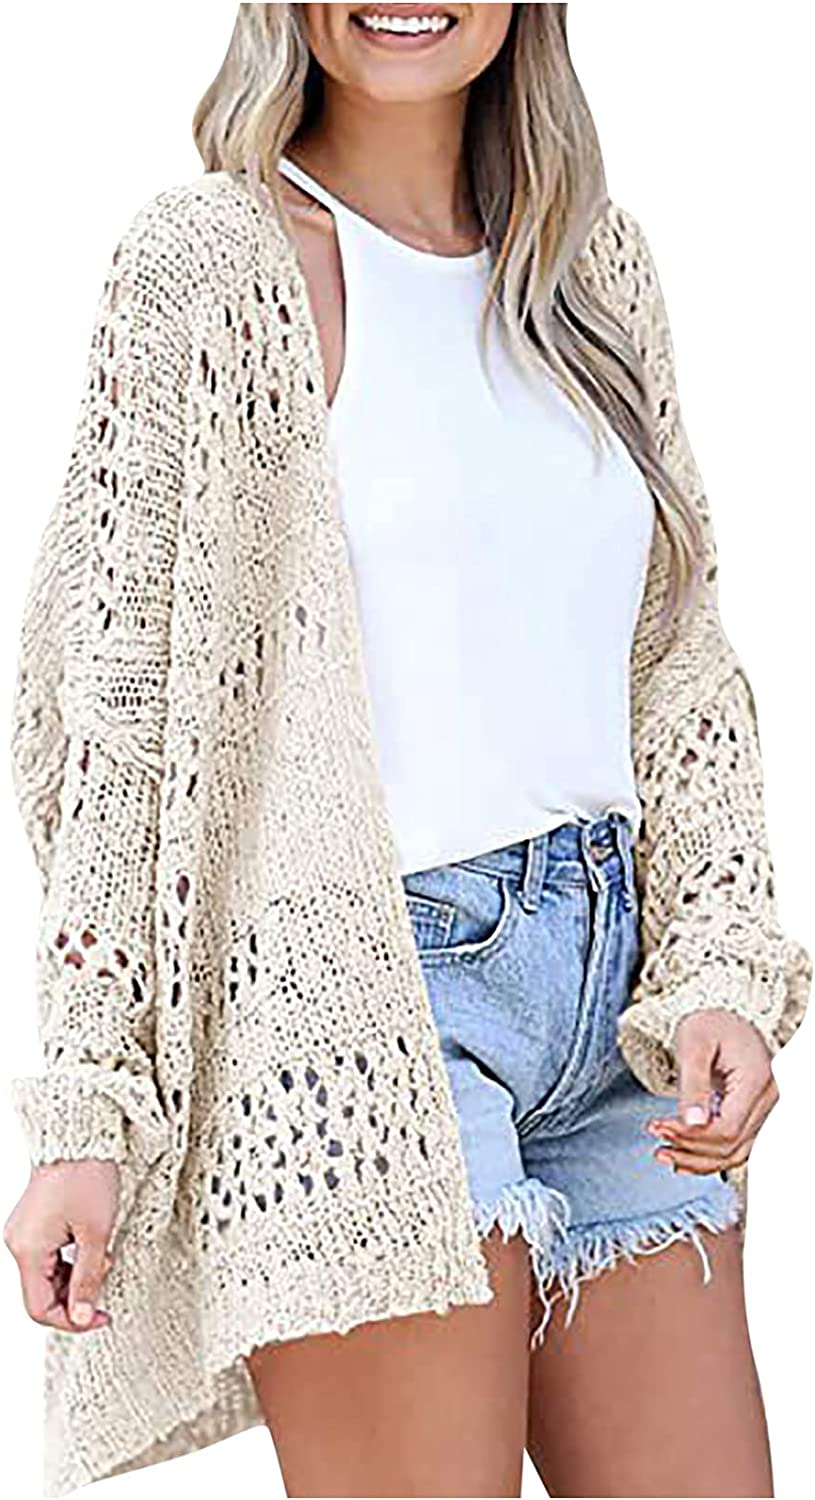 Black Cardigan for Women Hollow Out Knit Sweater Casual Solid Color Jacket Tops All-Match Daily Loose Blouse